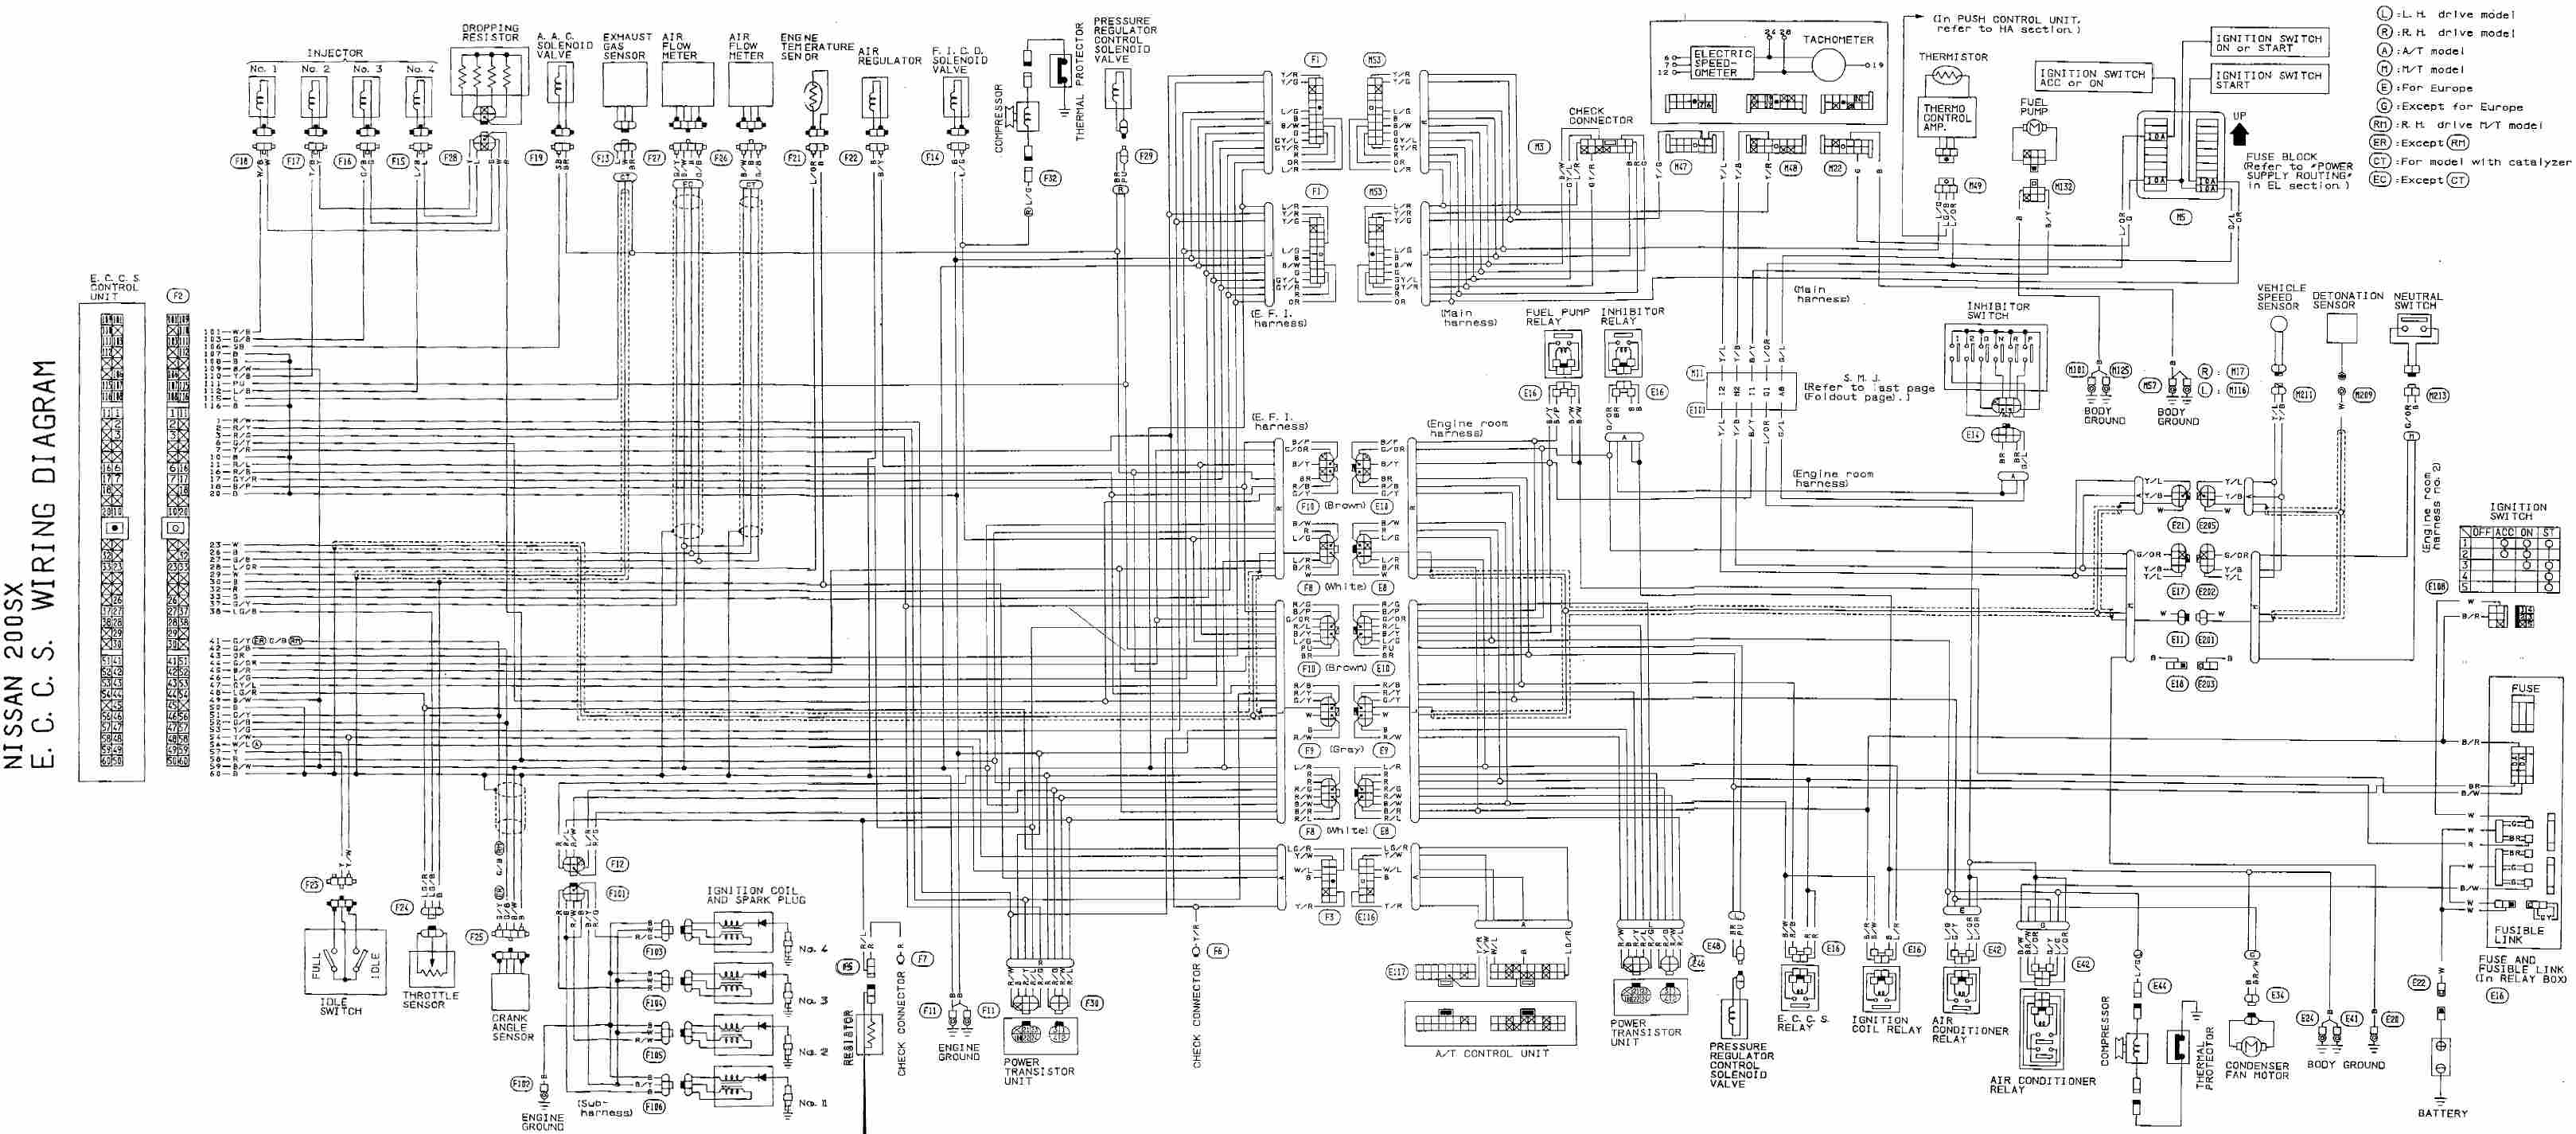 89 Nissan 300zx Engine Diagram - Wiring Diagram Data on cat 3.4 engine, pontiac 3.4 engine, porsche 3.4 engine,